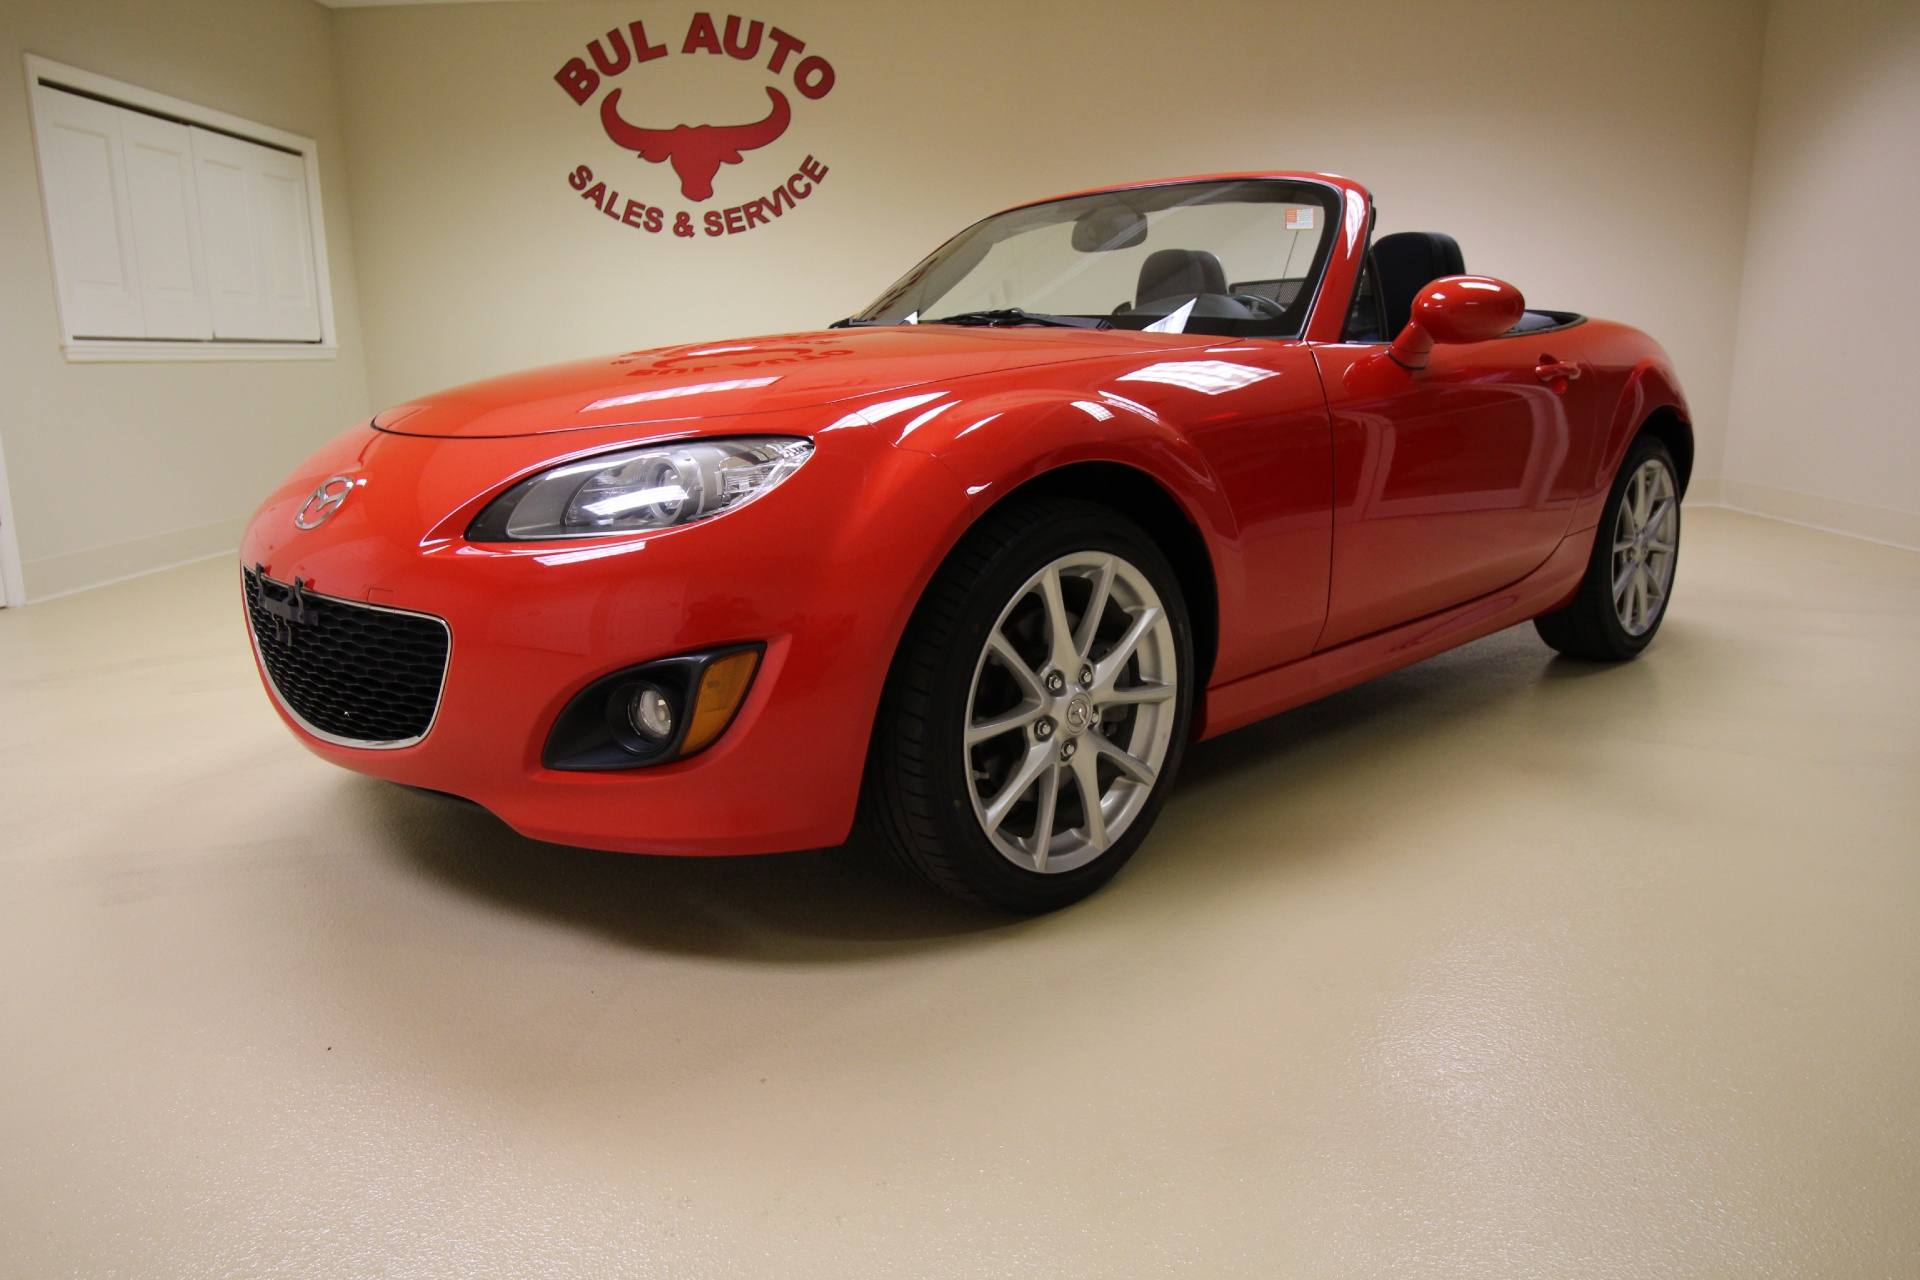 2010 mazda mx 5 miata touring stock 16188 for sale near. Black Bedroom Furniture Sets. Home Design Ideas